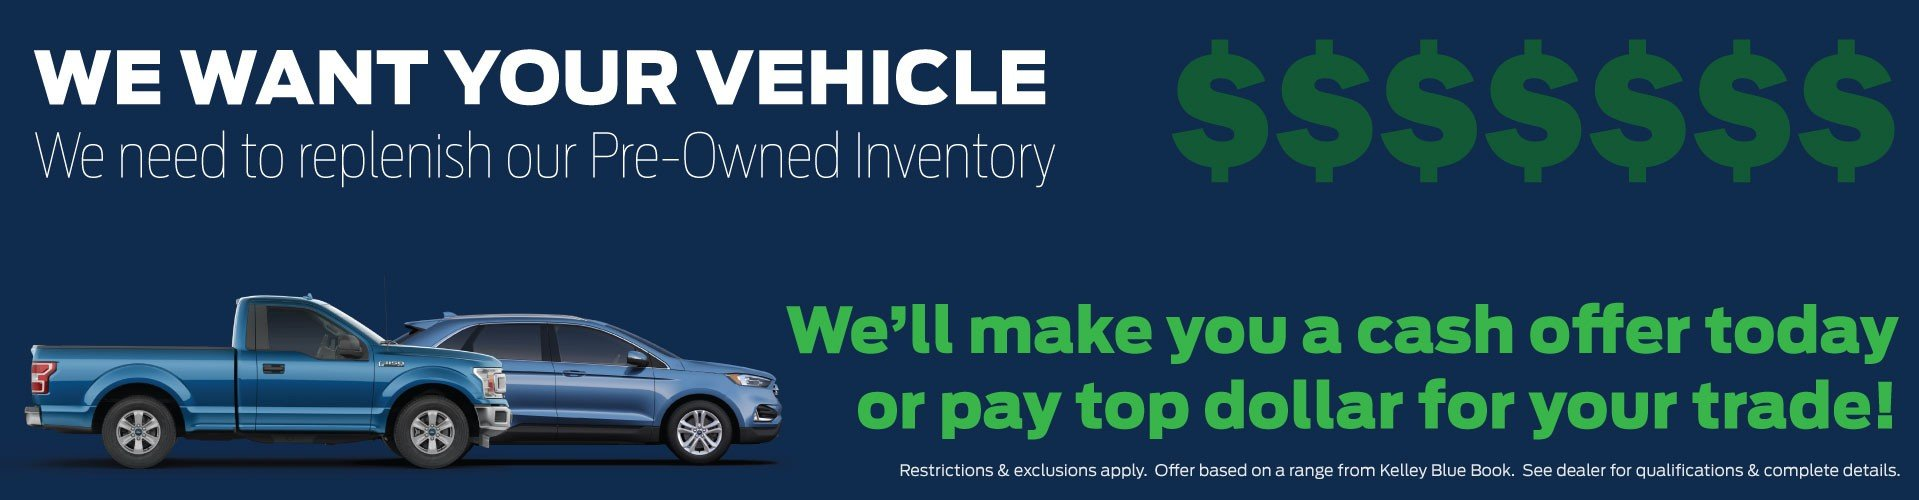 We Want Your Vehicle